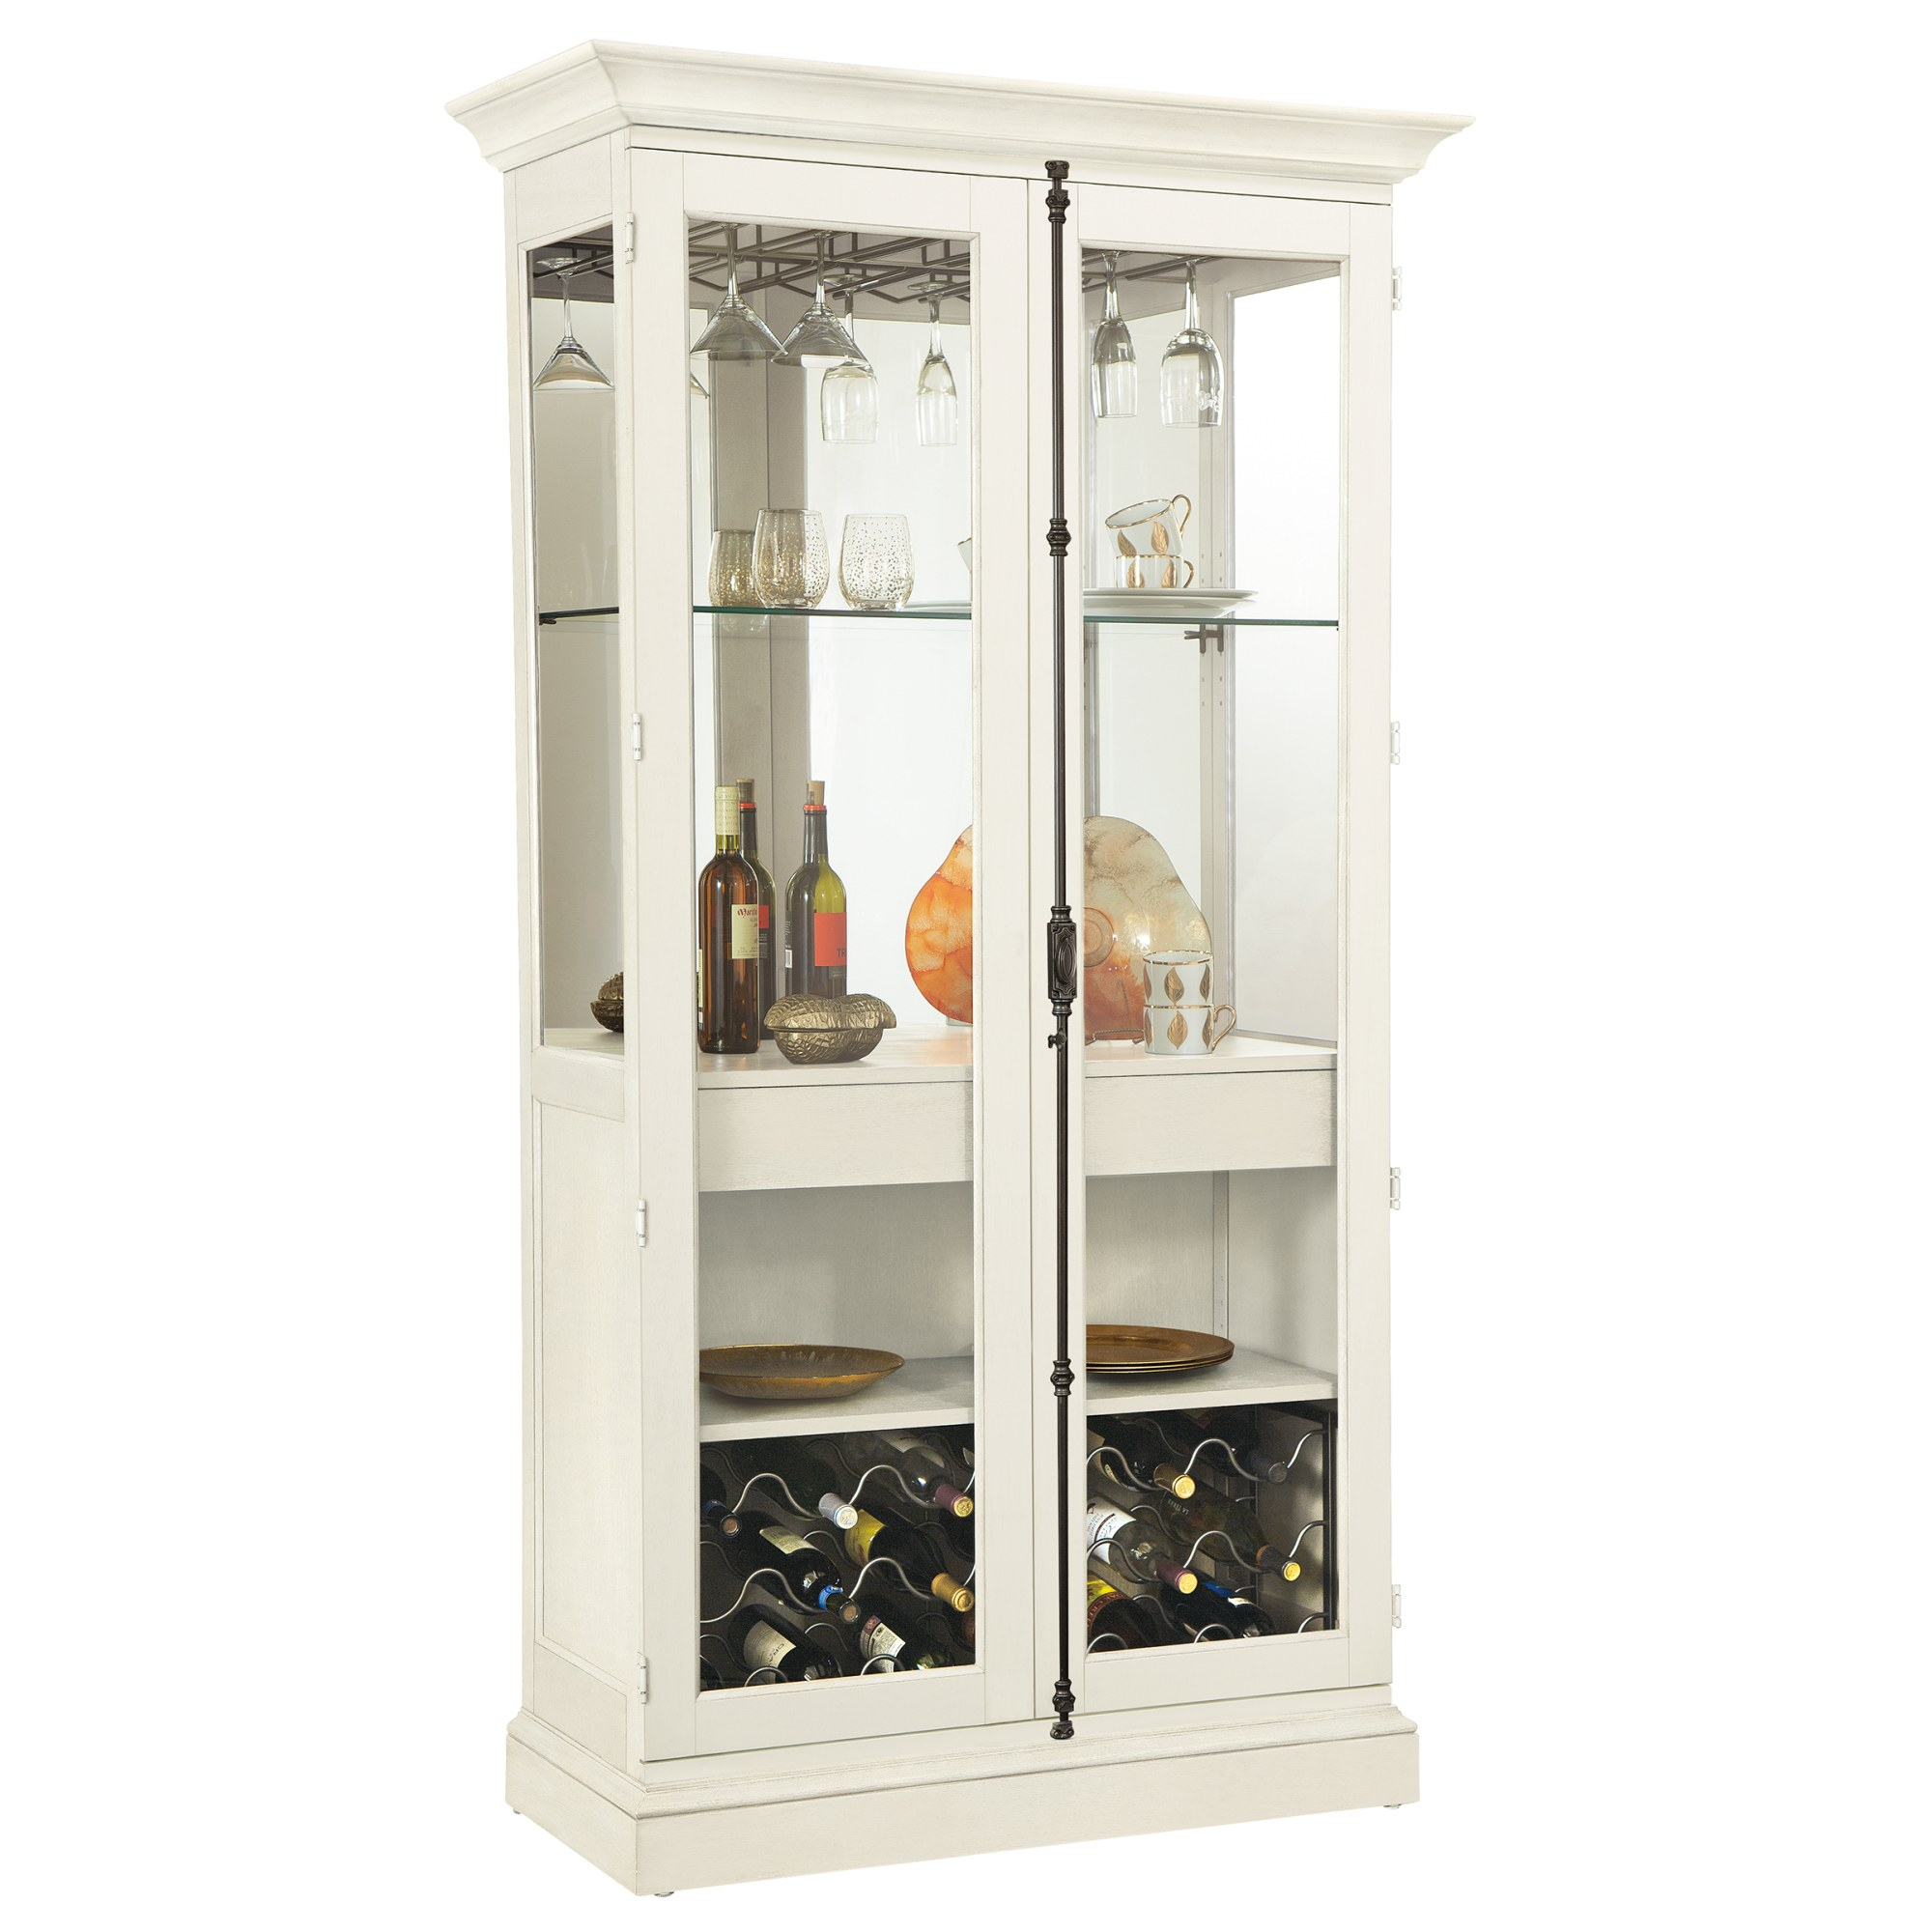 Image for 690-042 Socialize II Wine & Bar Cabinet from Howard Miller Official Website